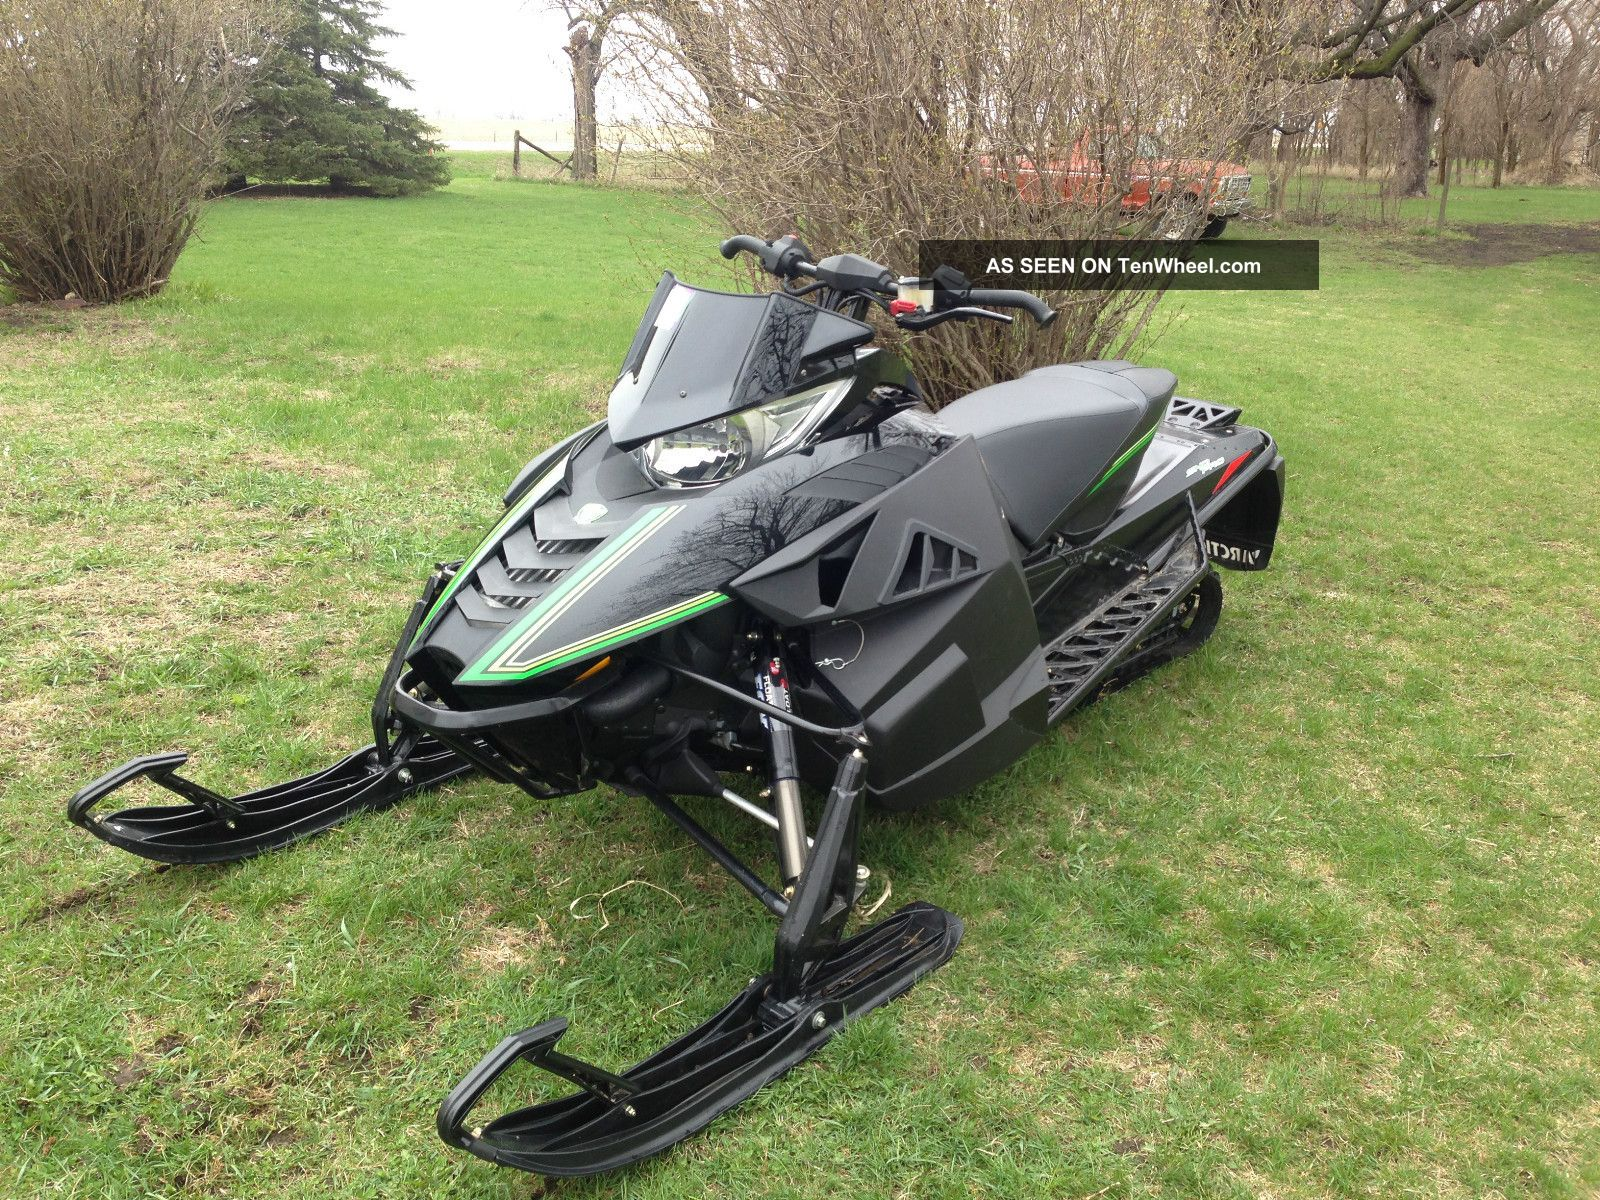 2012 Arctic Cat F1100 Turbo Procross Sno Pro Arctic Cat photo